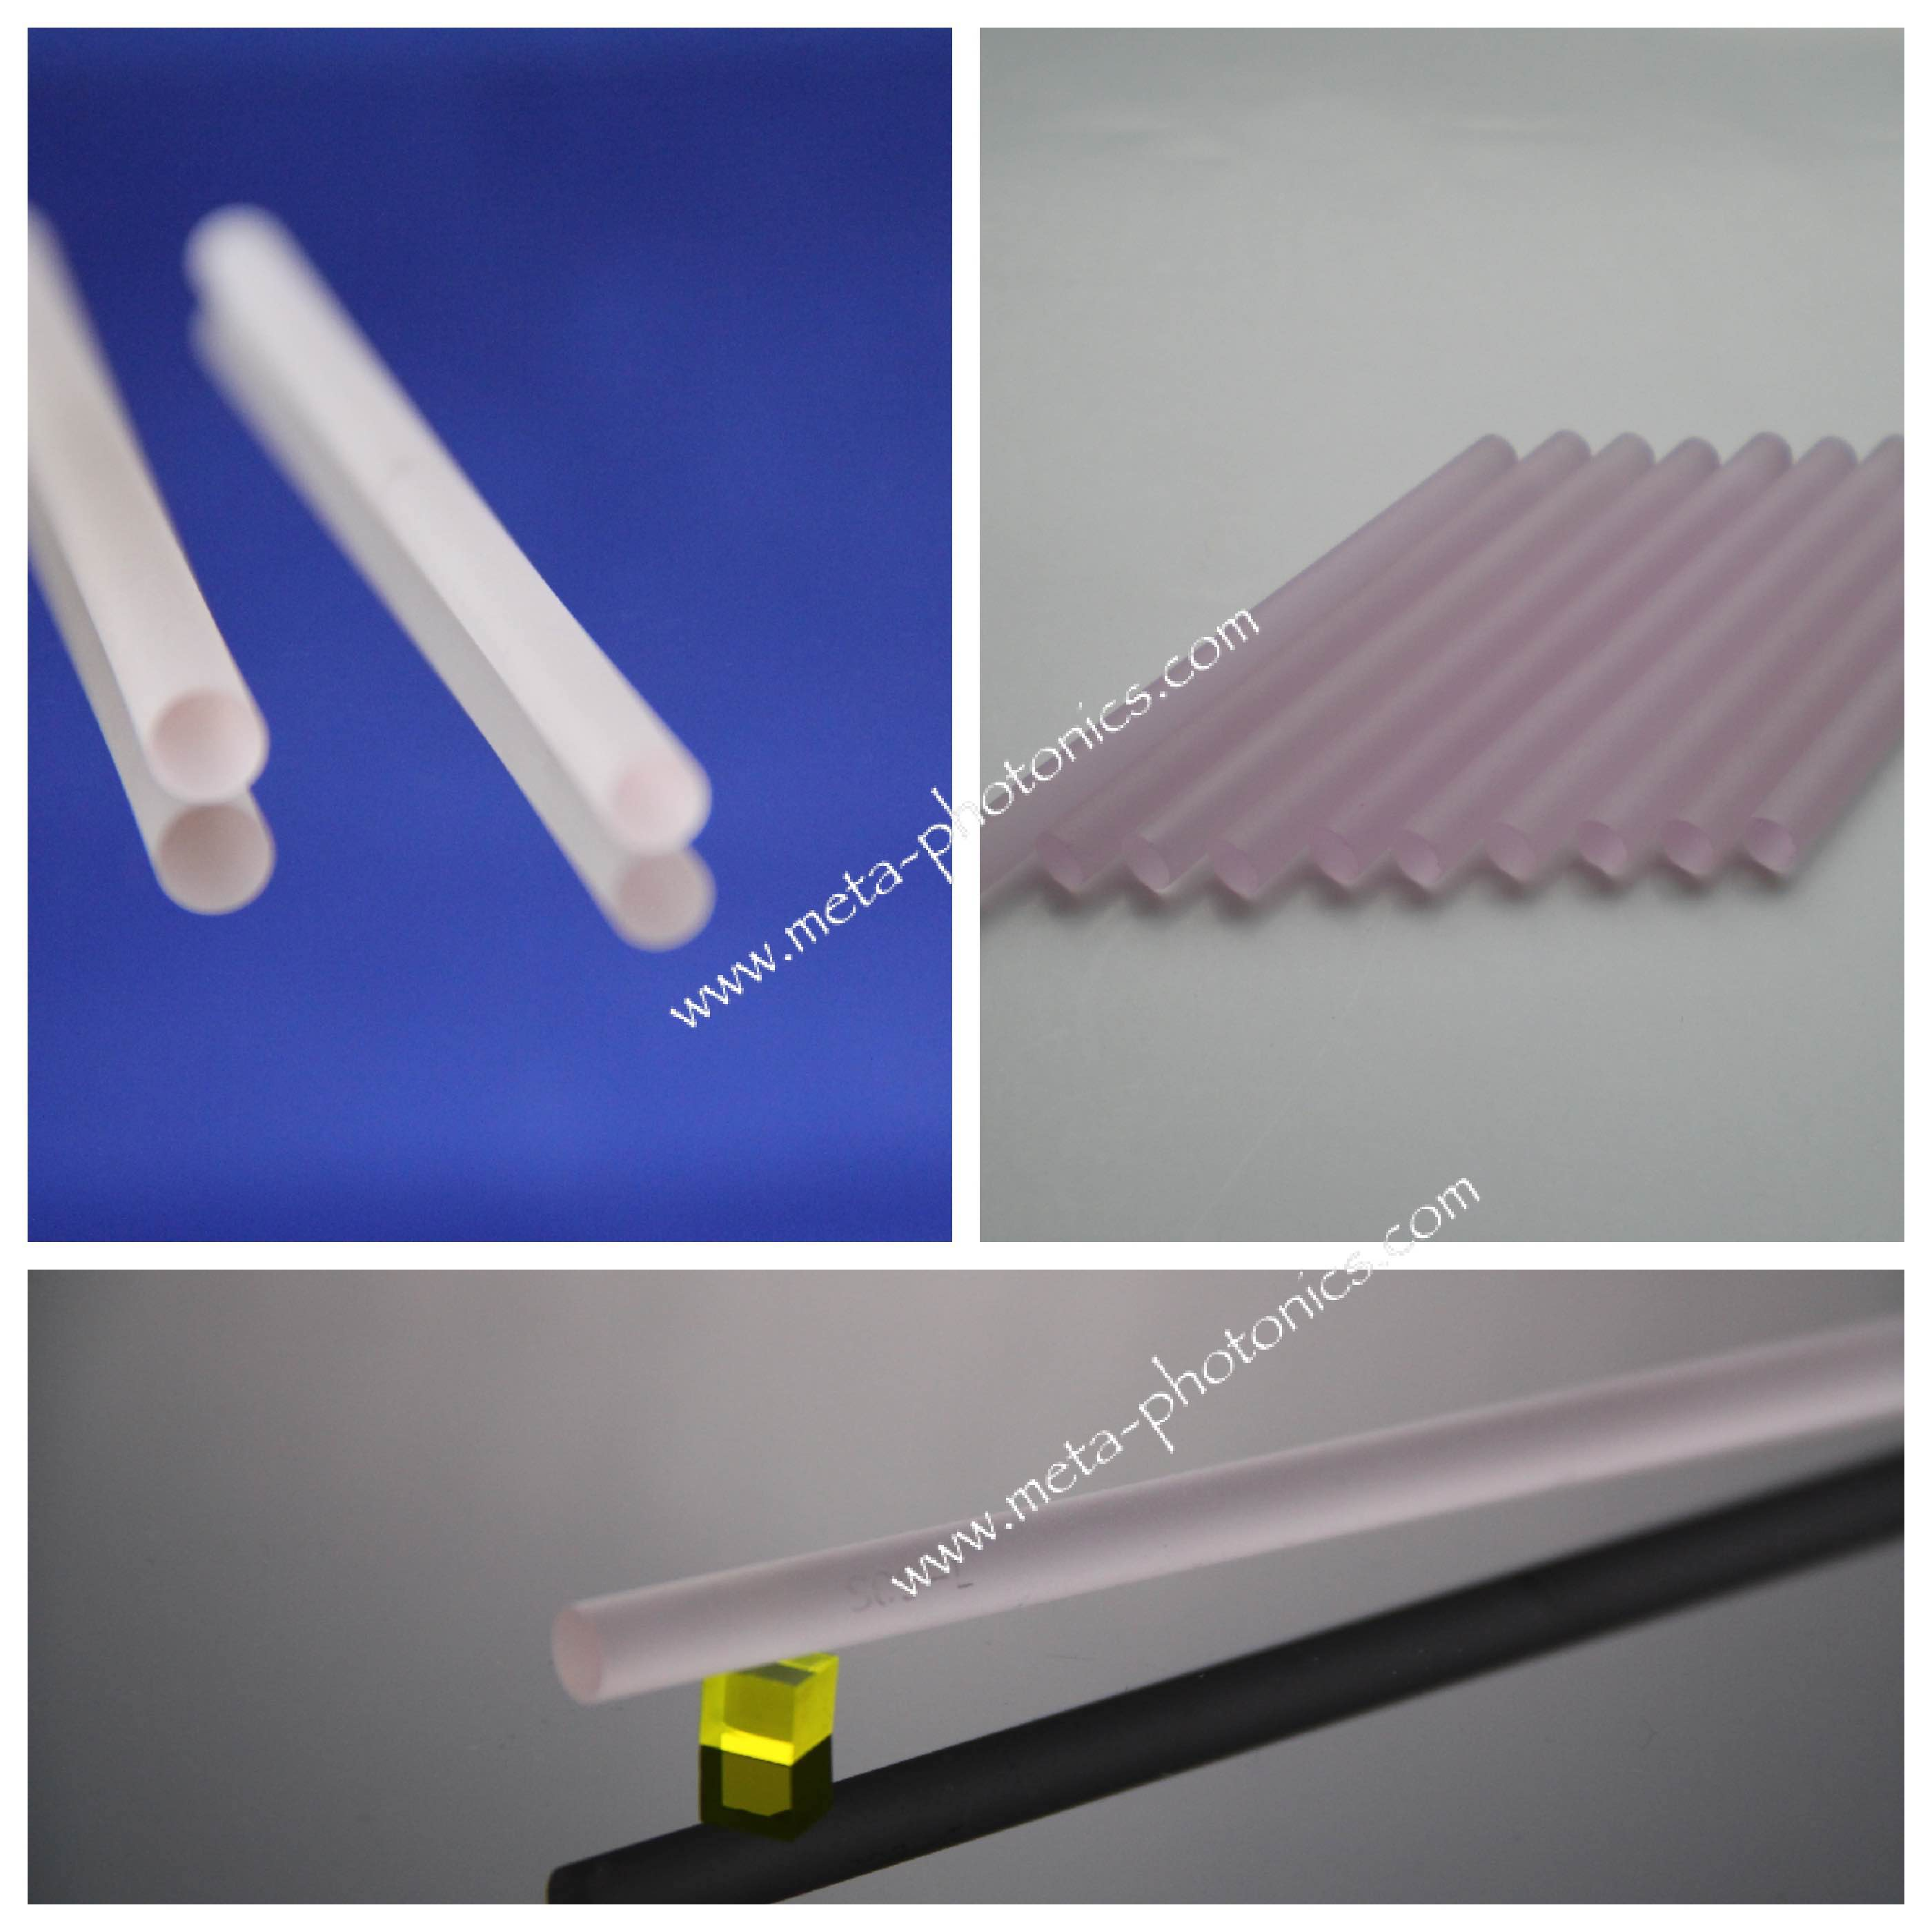 Nd:YAG laser crystal is the most popular lasing media for ...